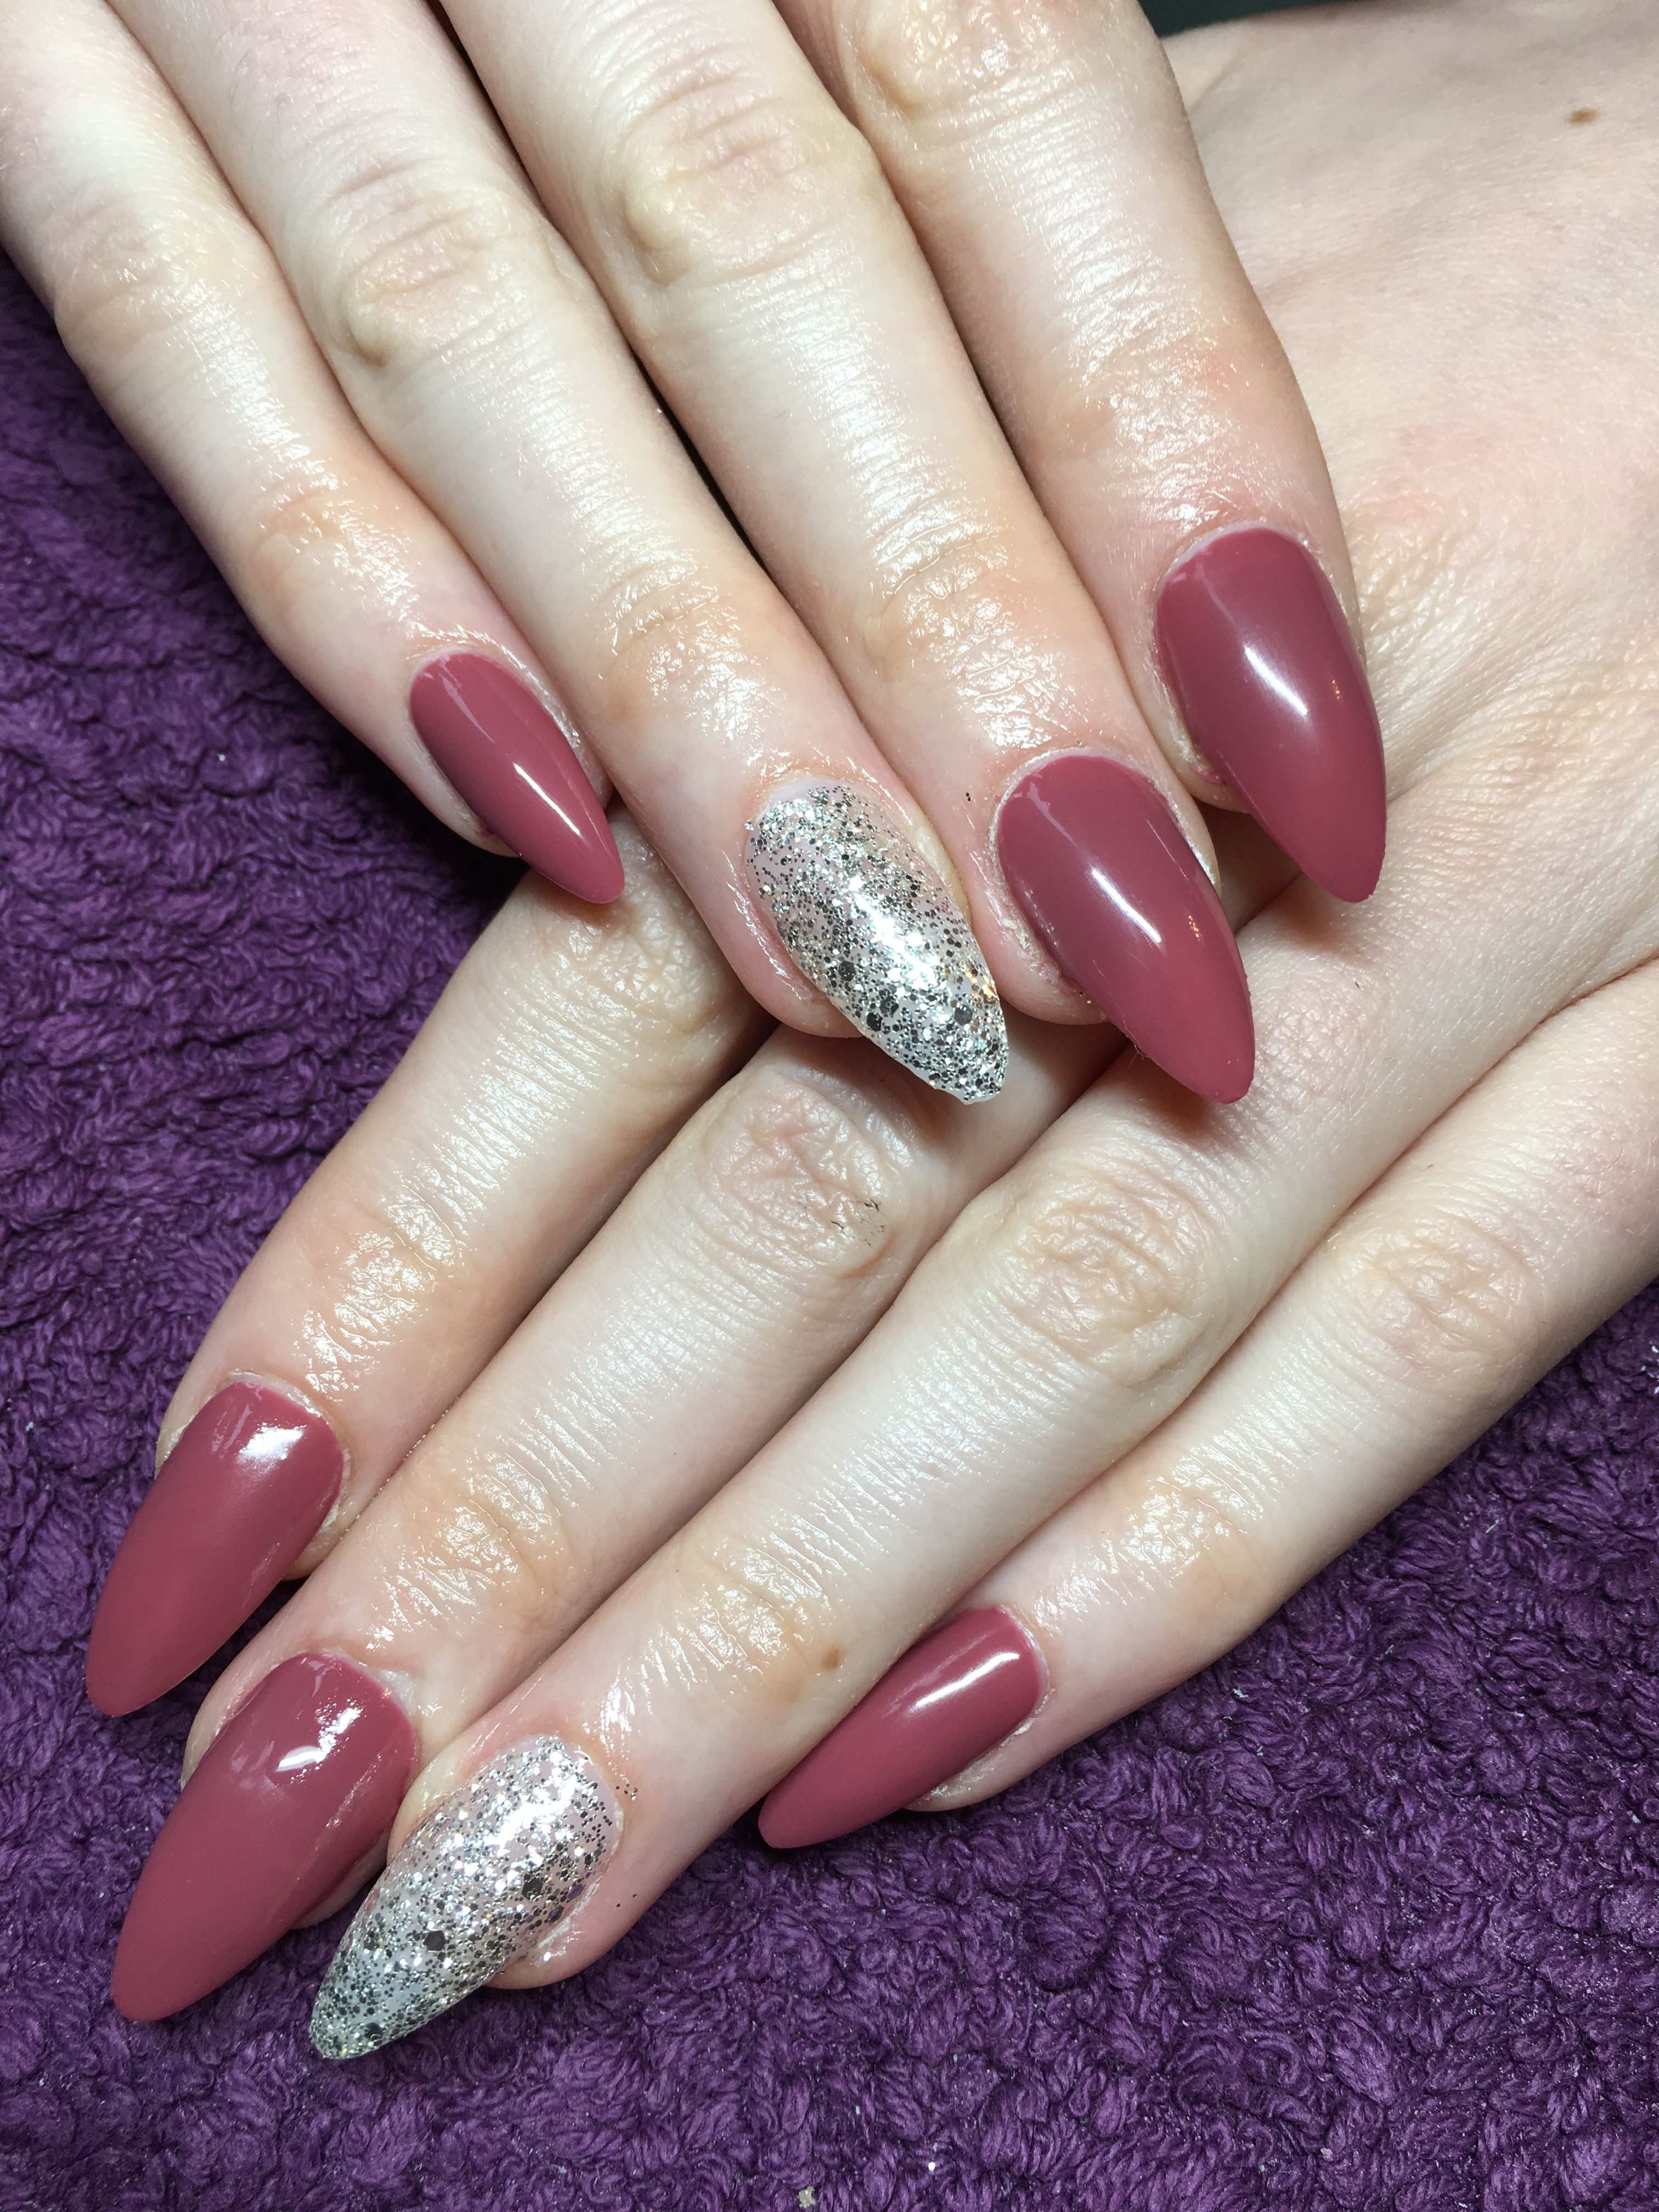 Express Nails ✨✨ | Nails By Steff | Pinterest | Express nails